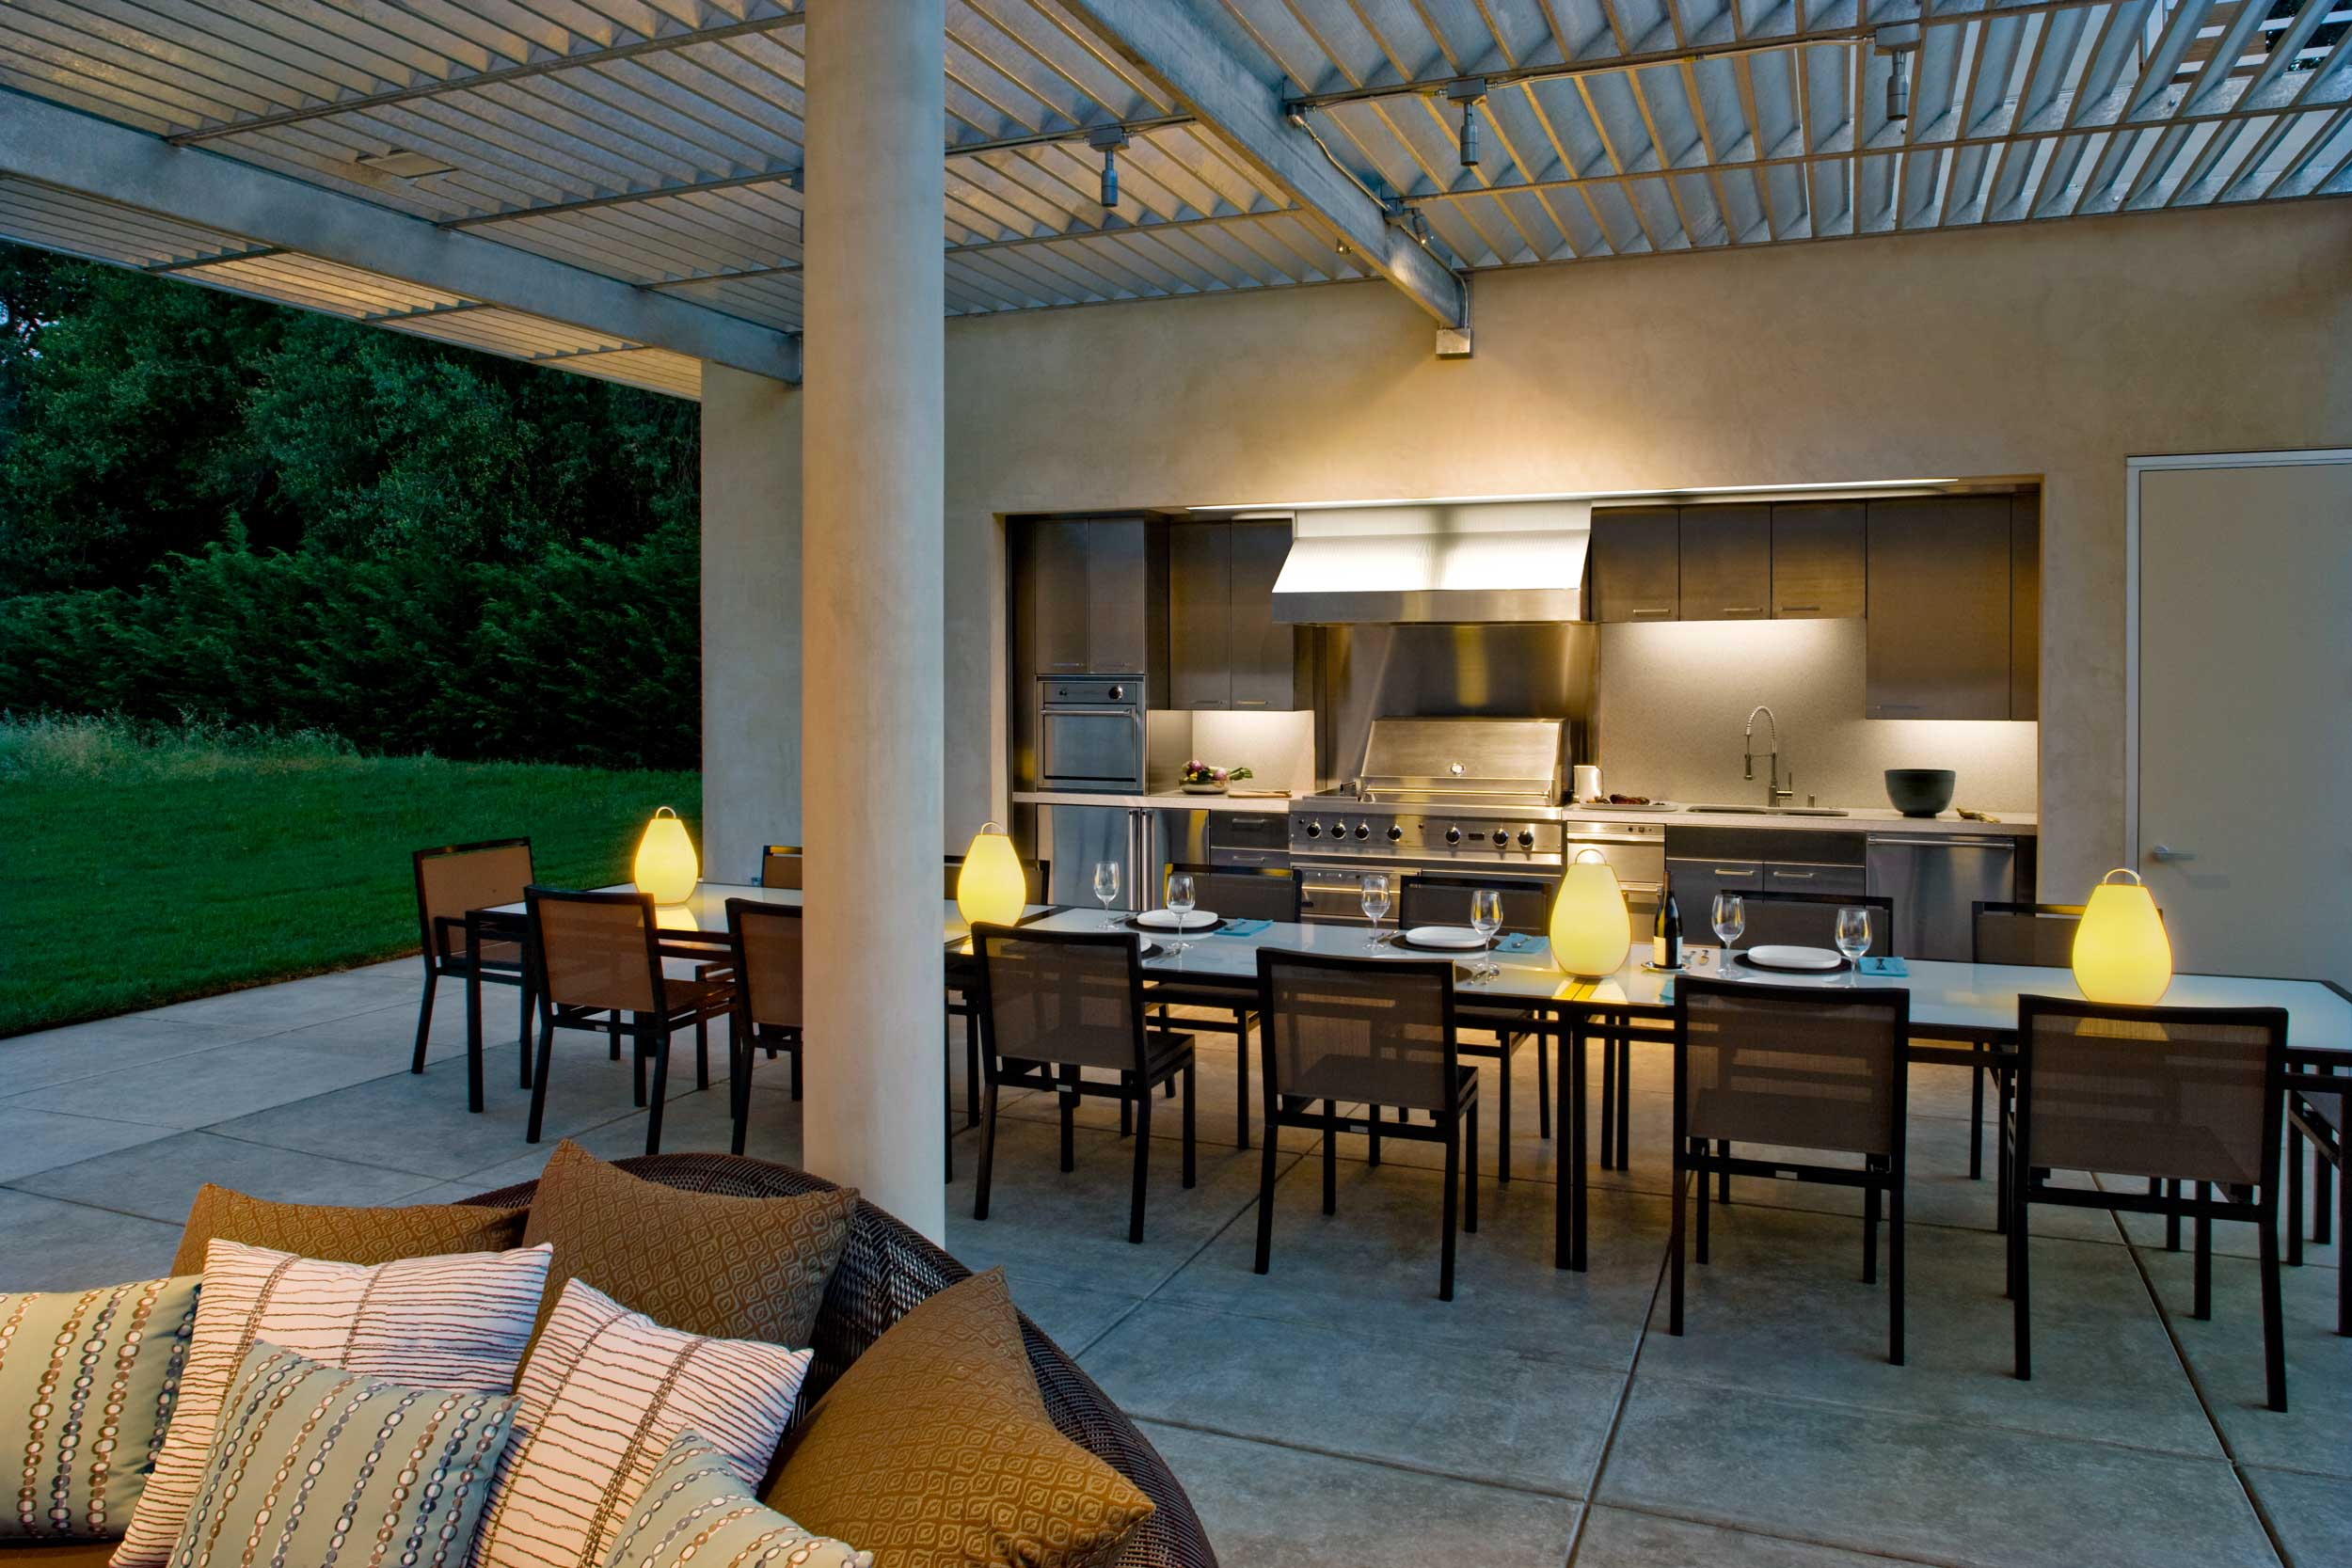 View of Outdoor Kitchen on Patio